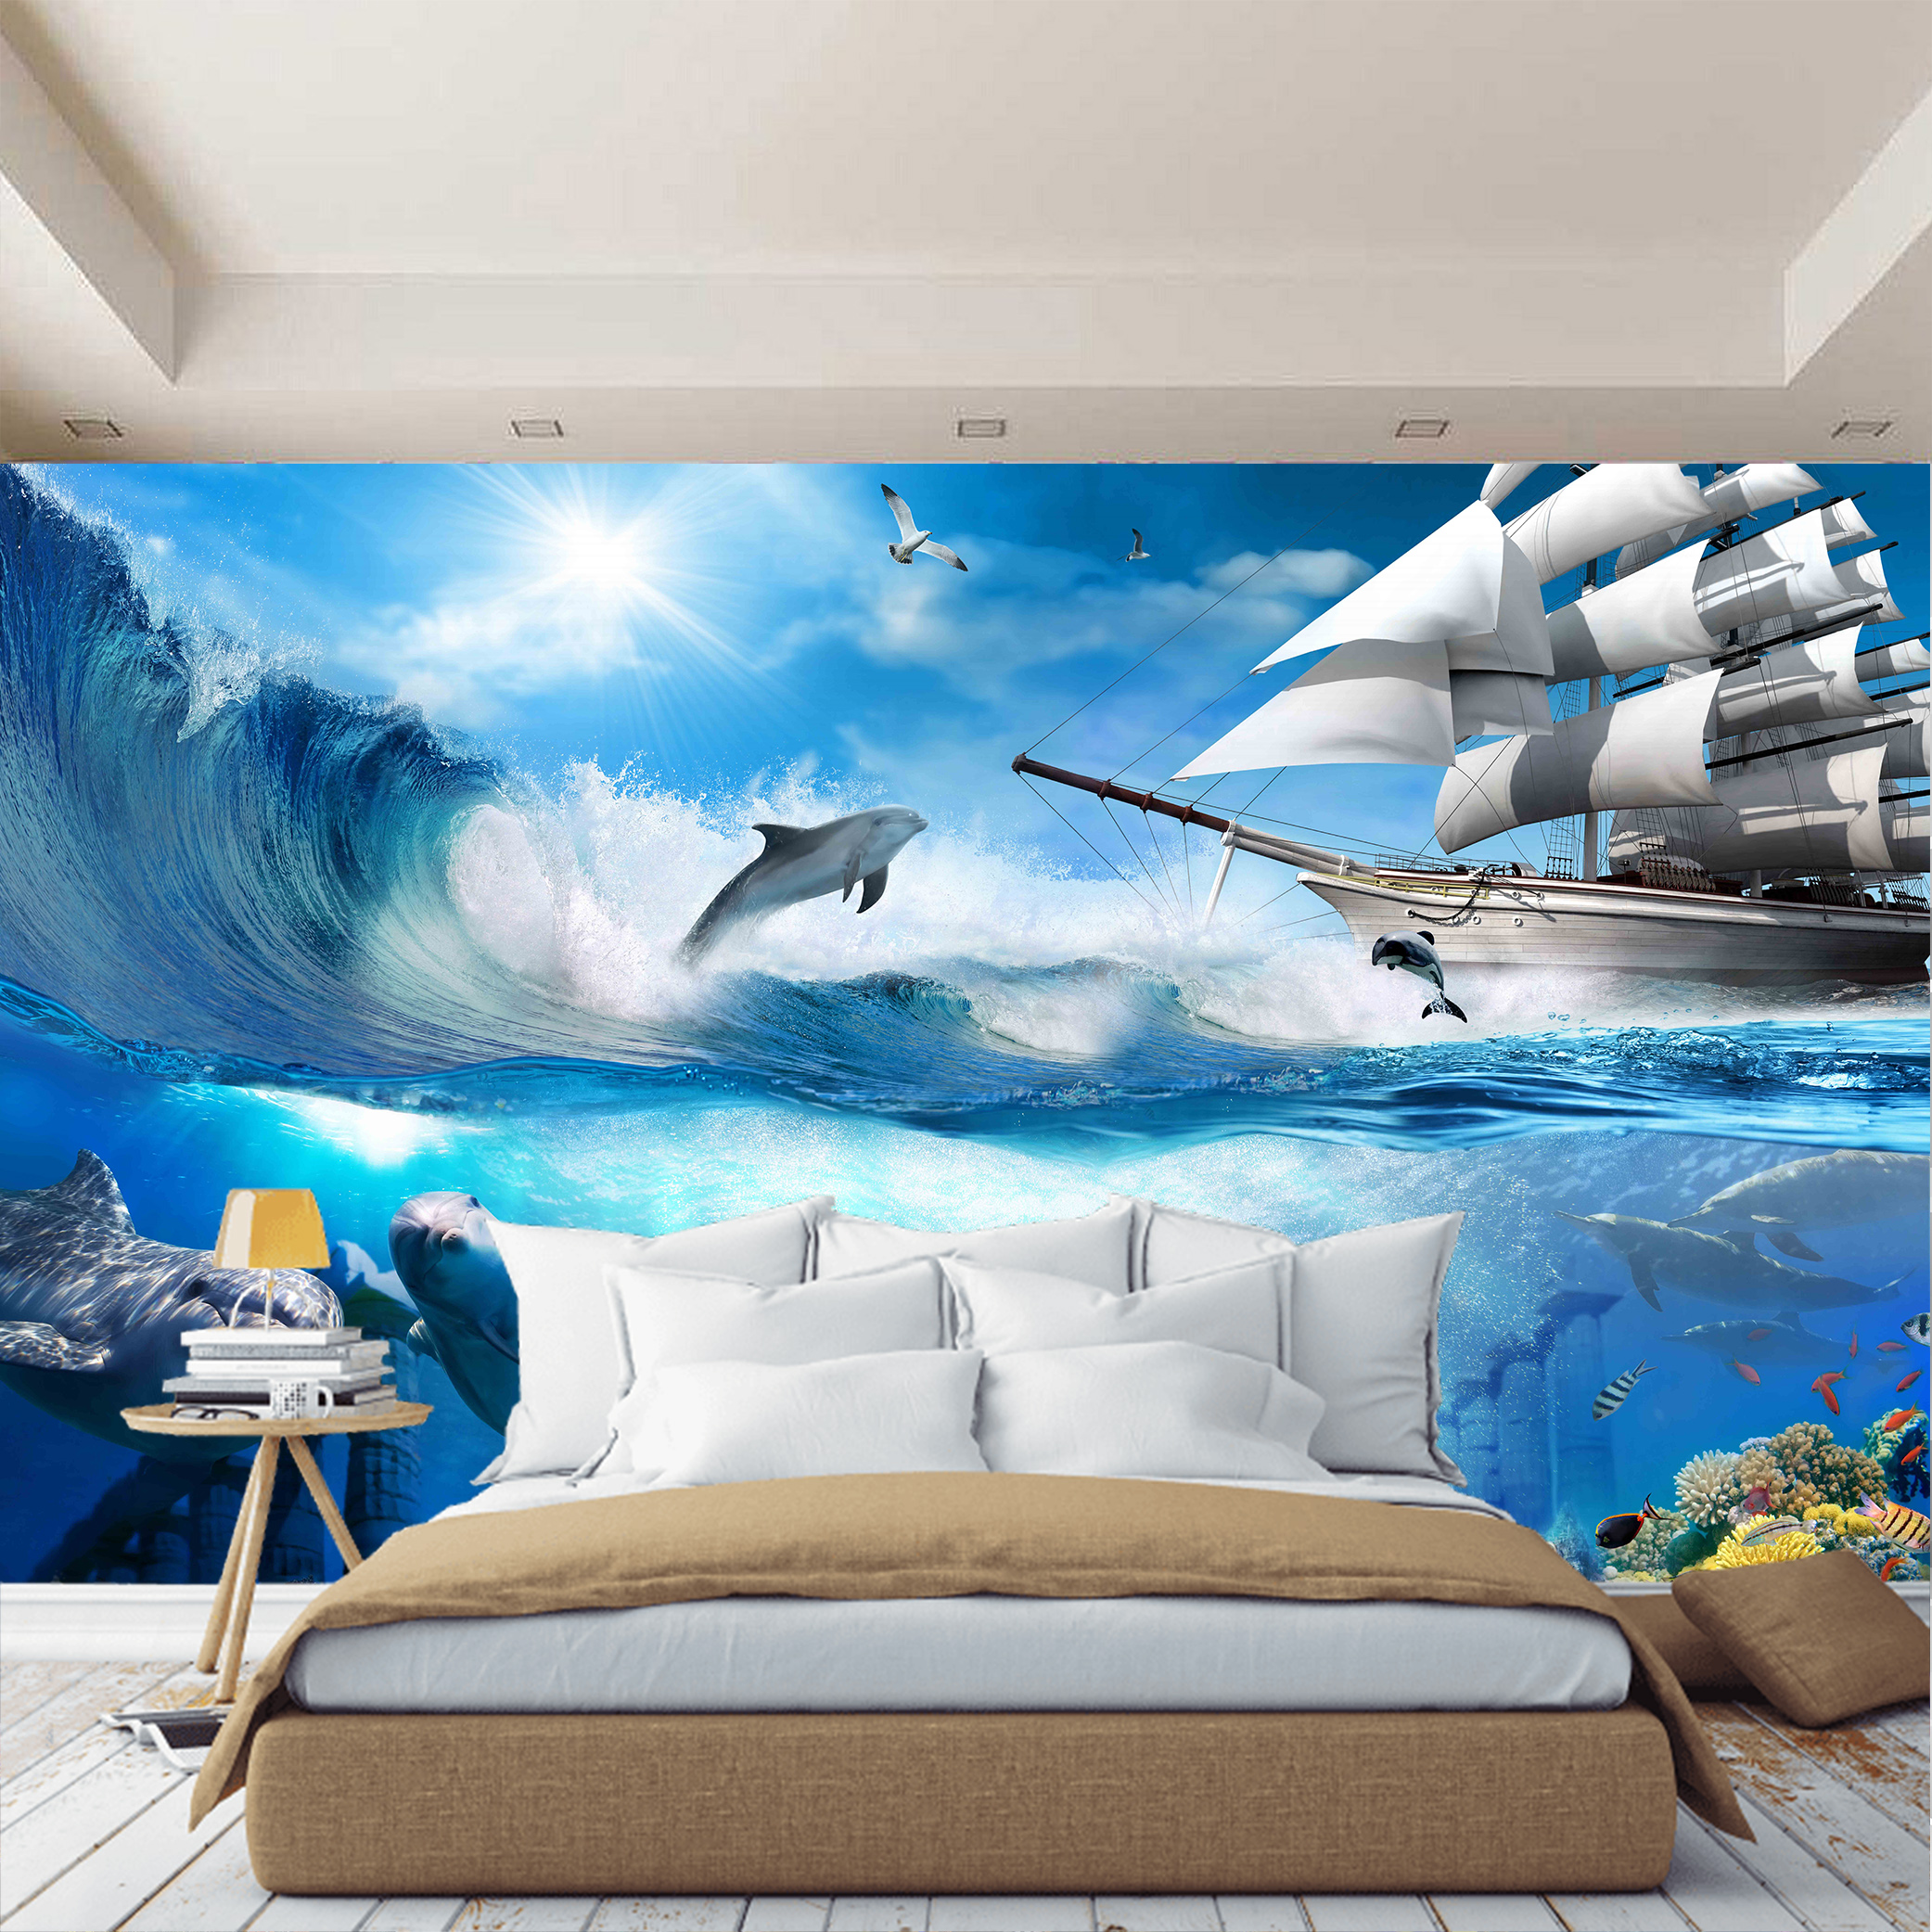 3D Wall Mural Water World Ocean Sea Fish Wallpaper For Hall Kitchen Bedroom Kids Wall Mural